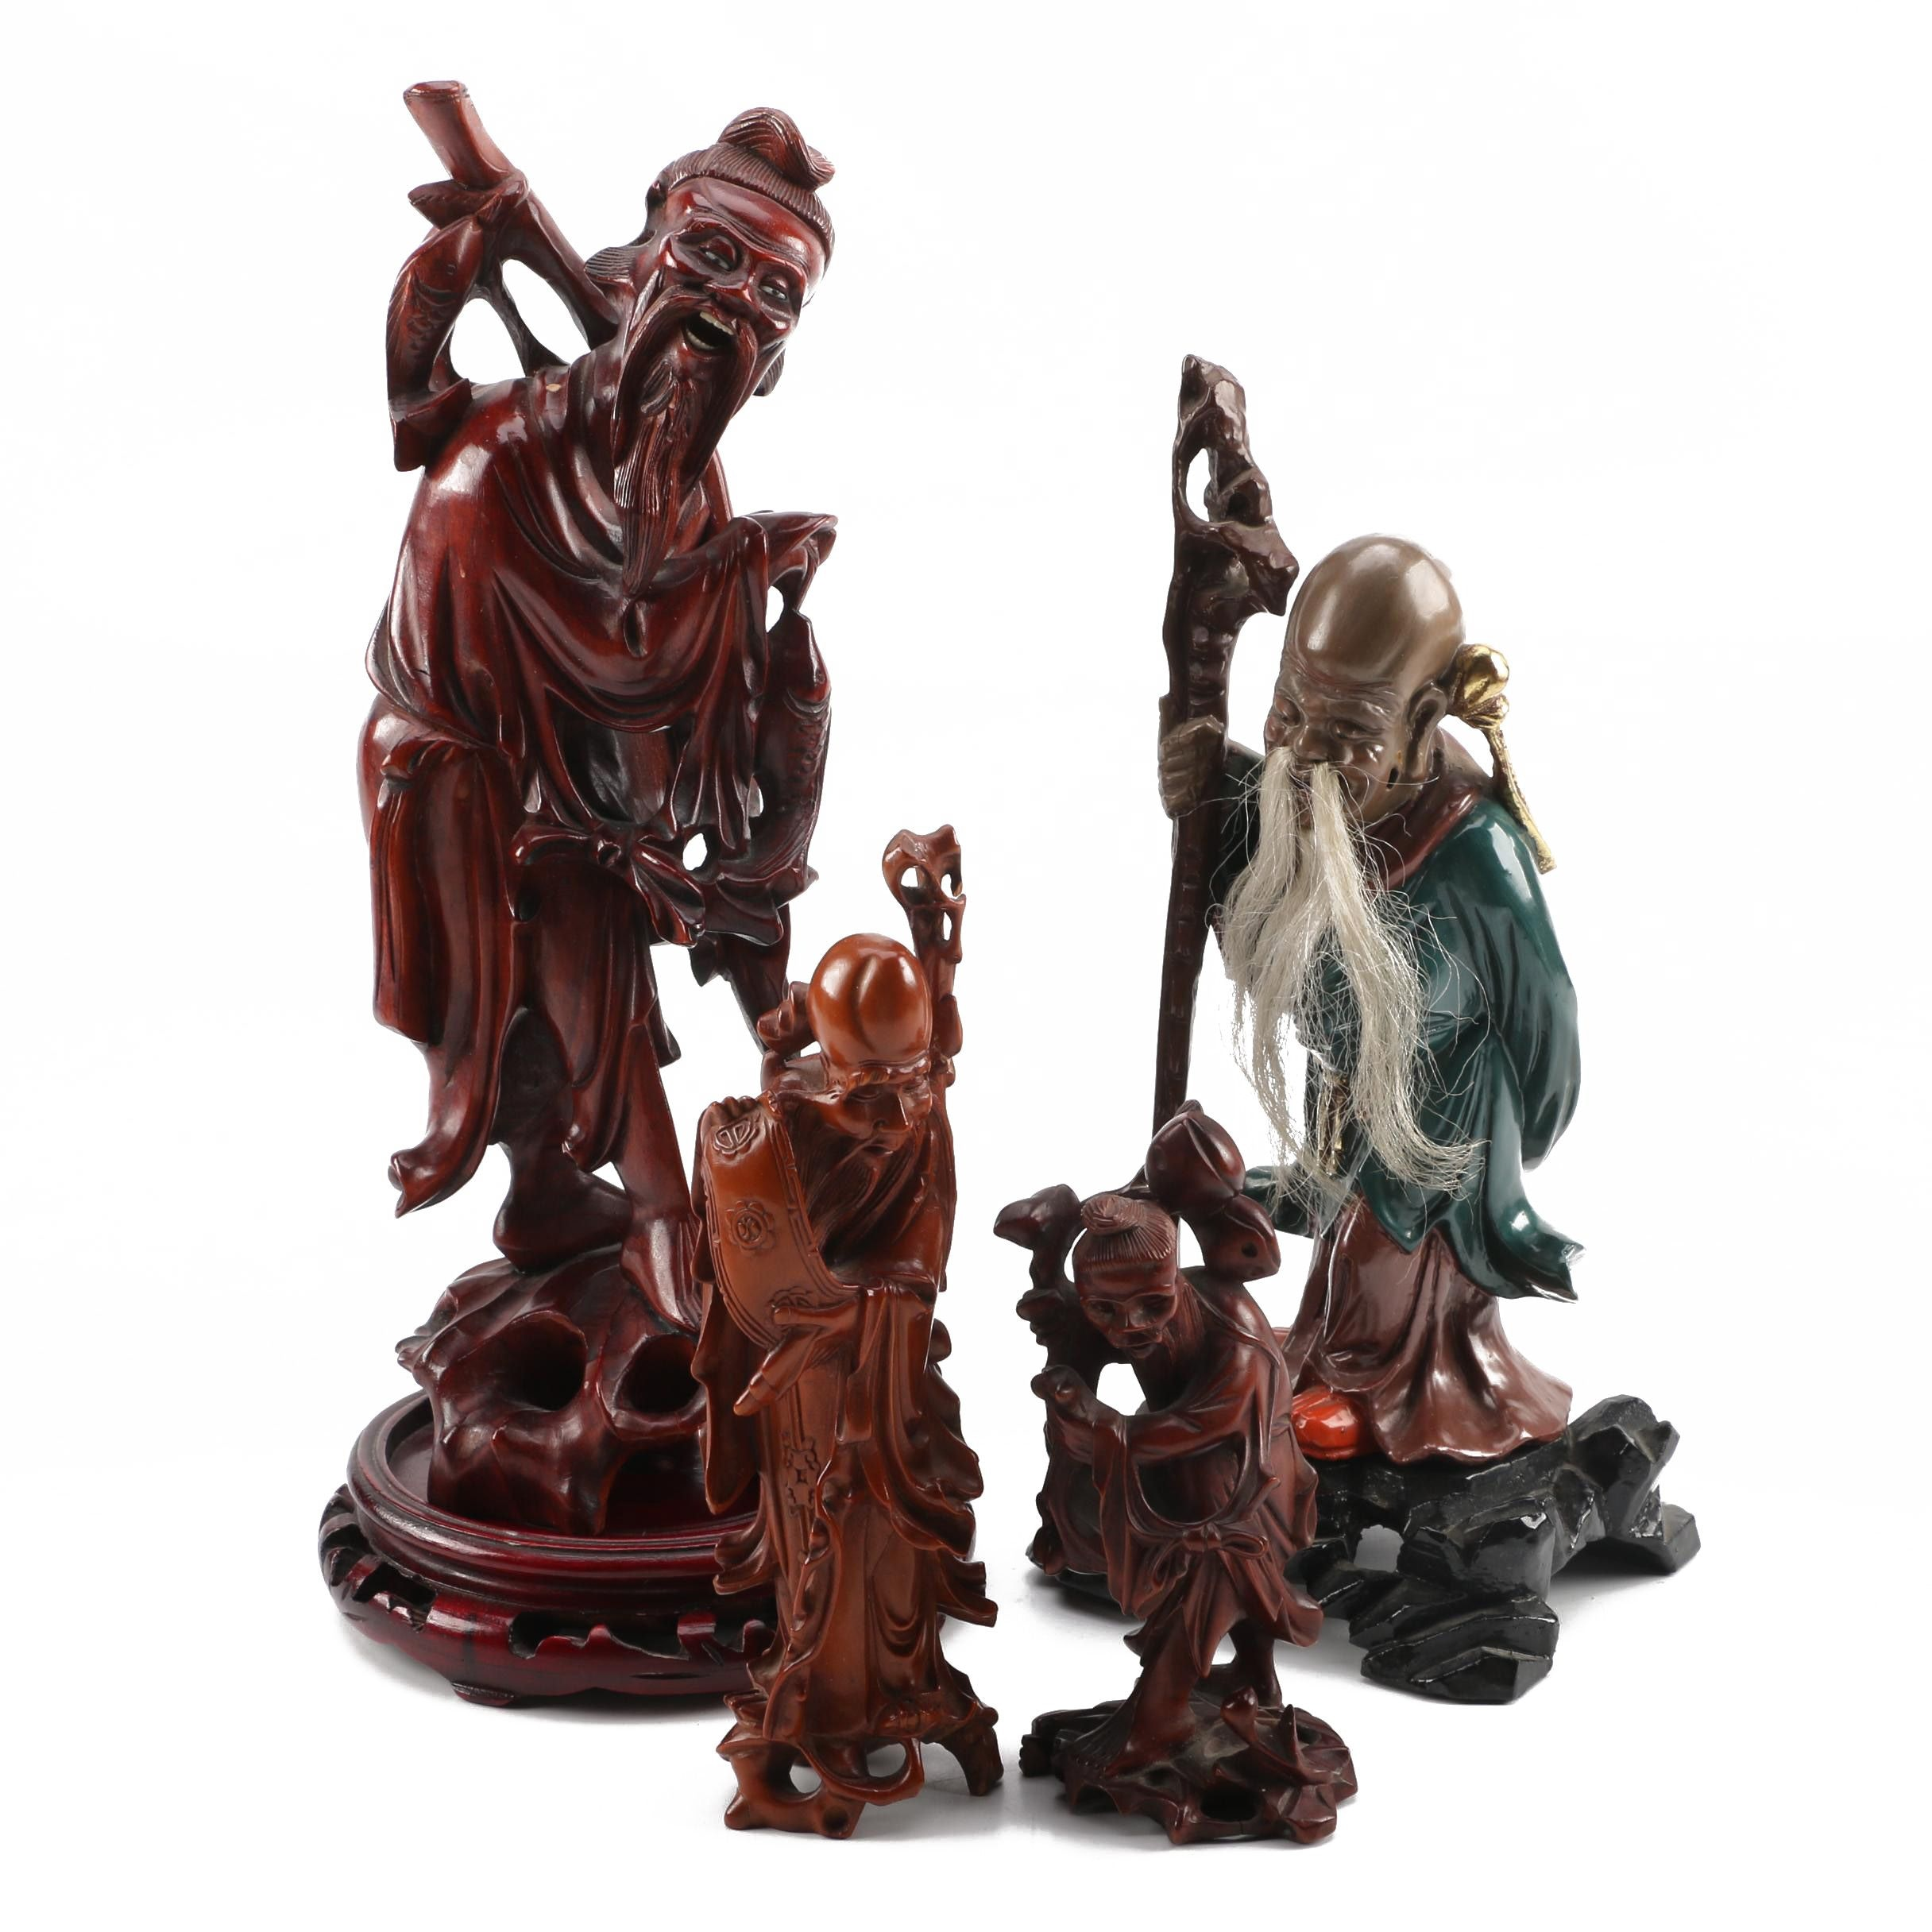 Chinese Carvings and Figurines